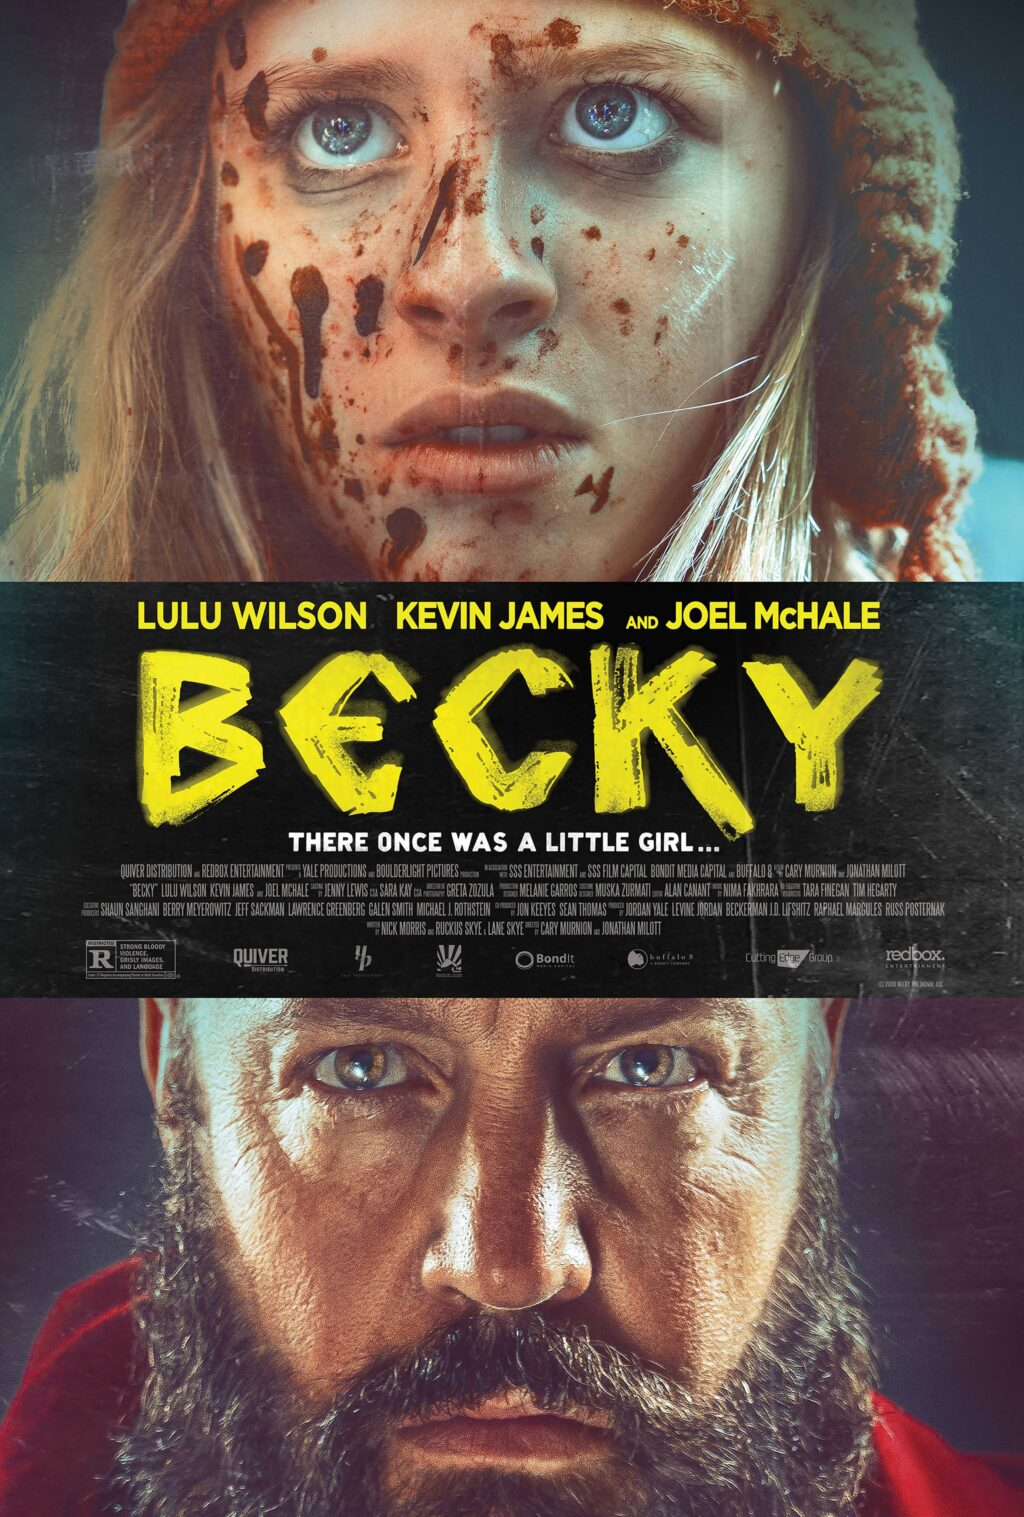 Becky 2764x4096 1024x1517 - Drive-In & Theatrical Locations for BECKY Starring Lulu Wilson & Kevin James, Out June 5th